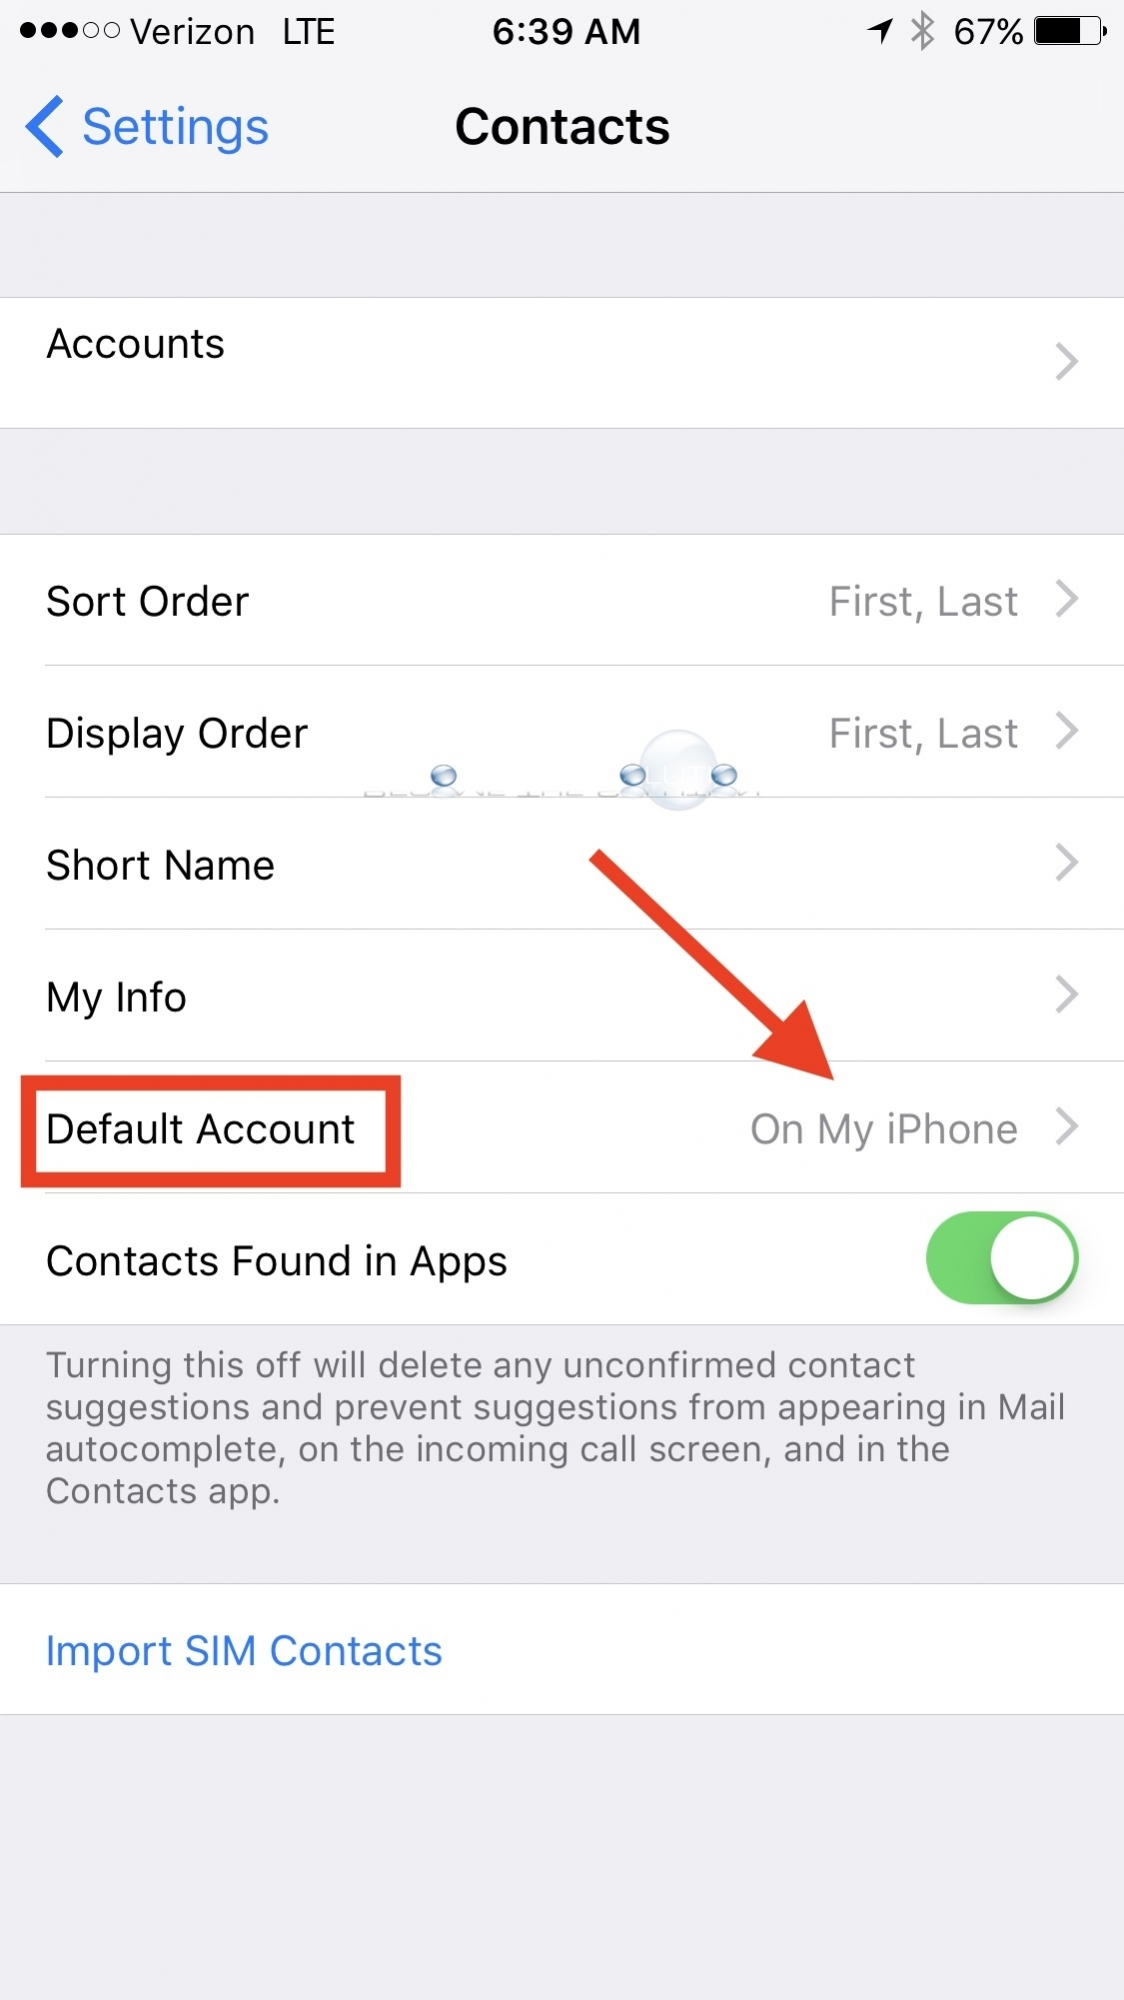 iPhone settings default account